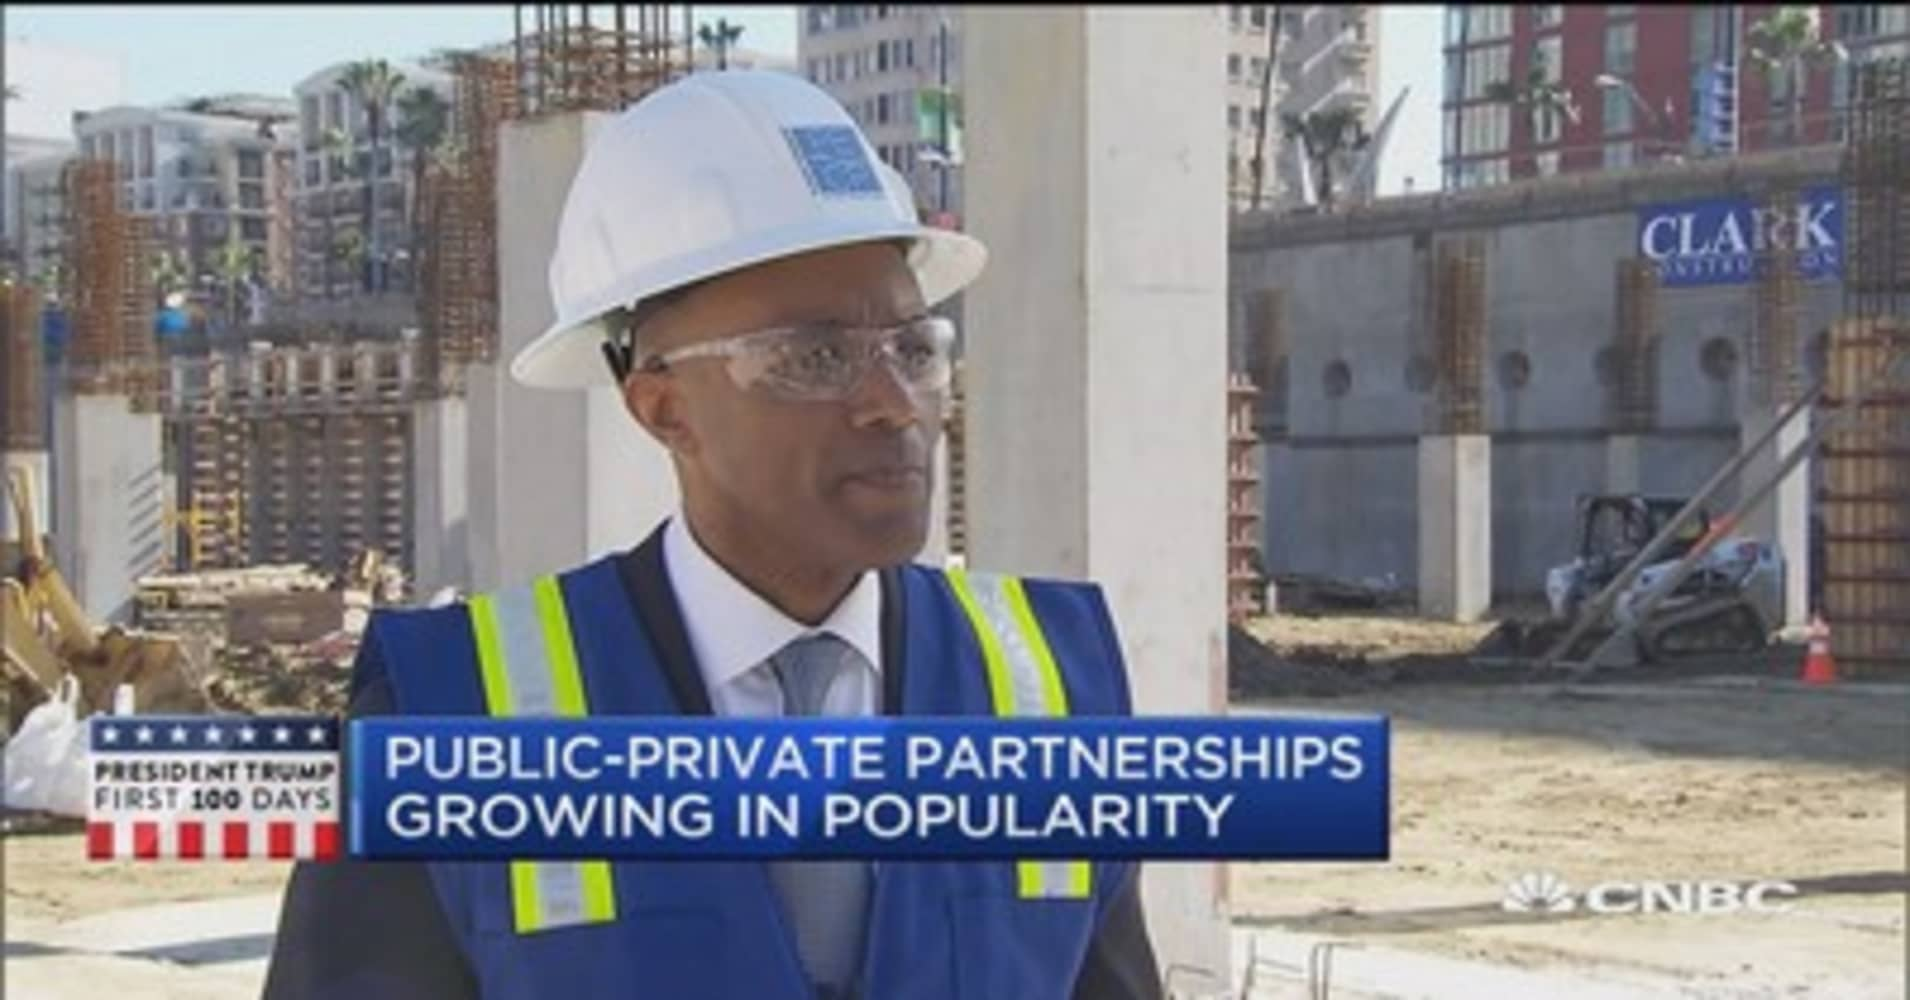 Public Private Partnerships Ppp